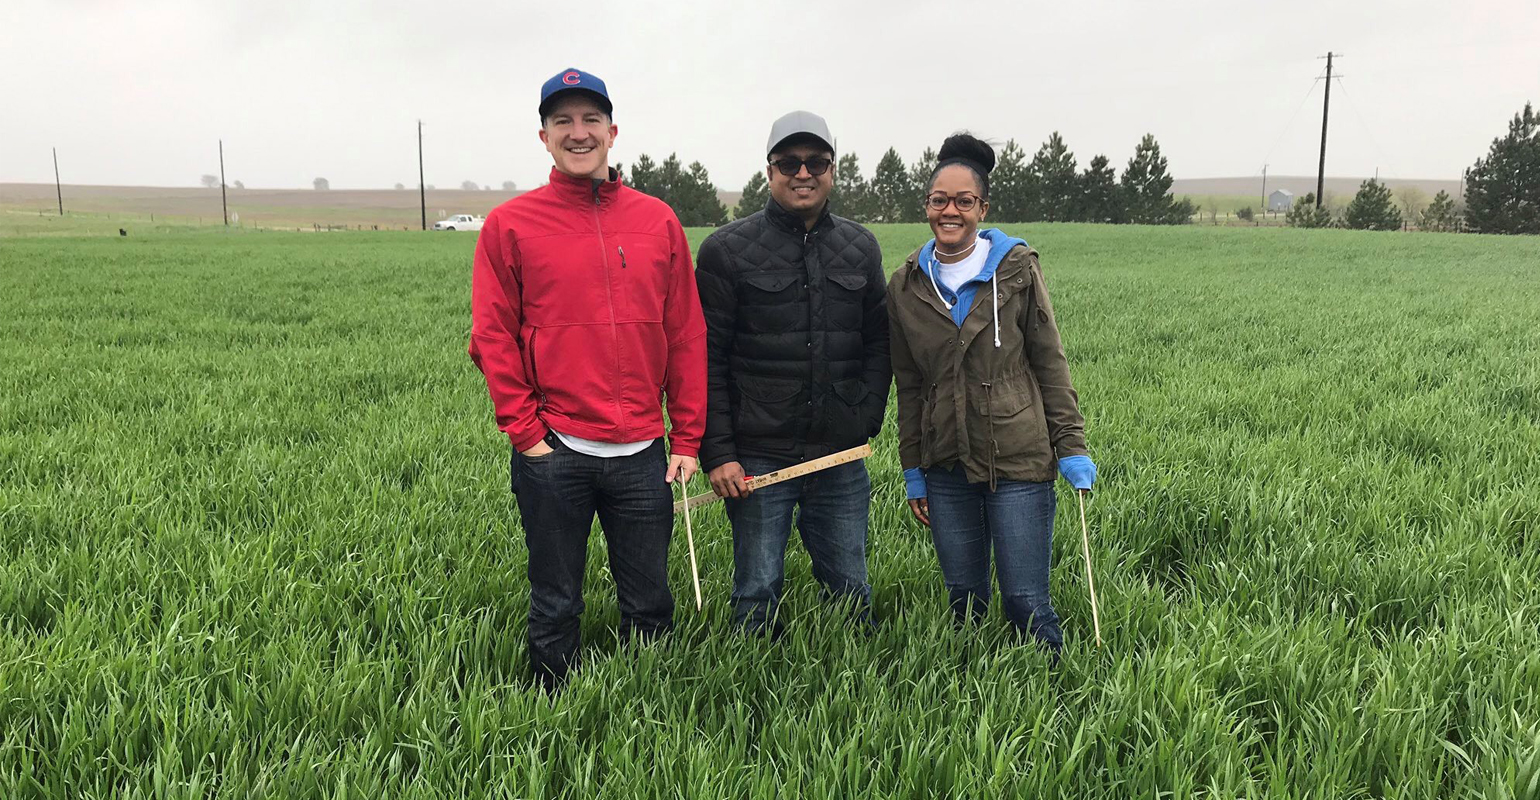 Part of the value to Wheat Quality Tour participants is the opportunity to get to know more about the industry and the people who work in it. These participants are Josh Reasoner, Fahad Vaipel and Jasmon Montgomery